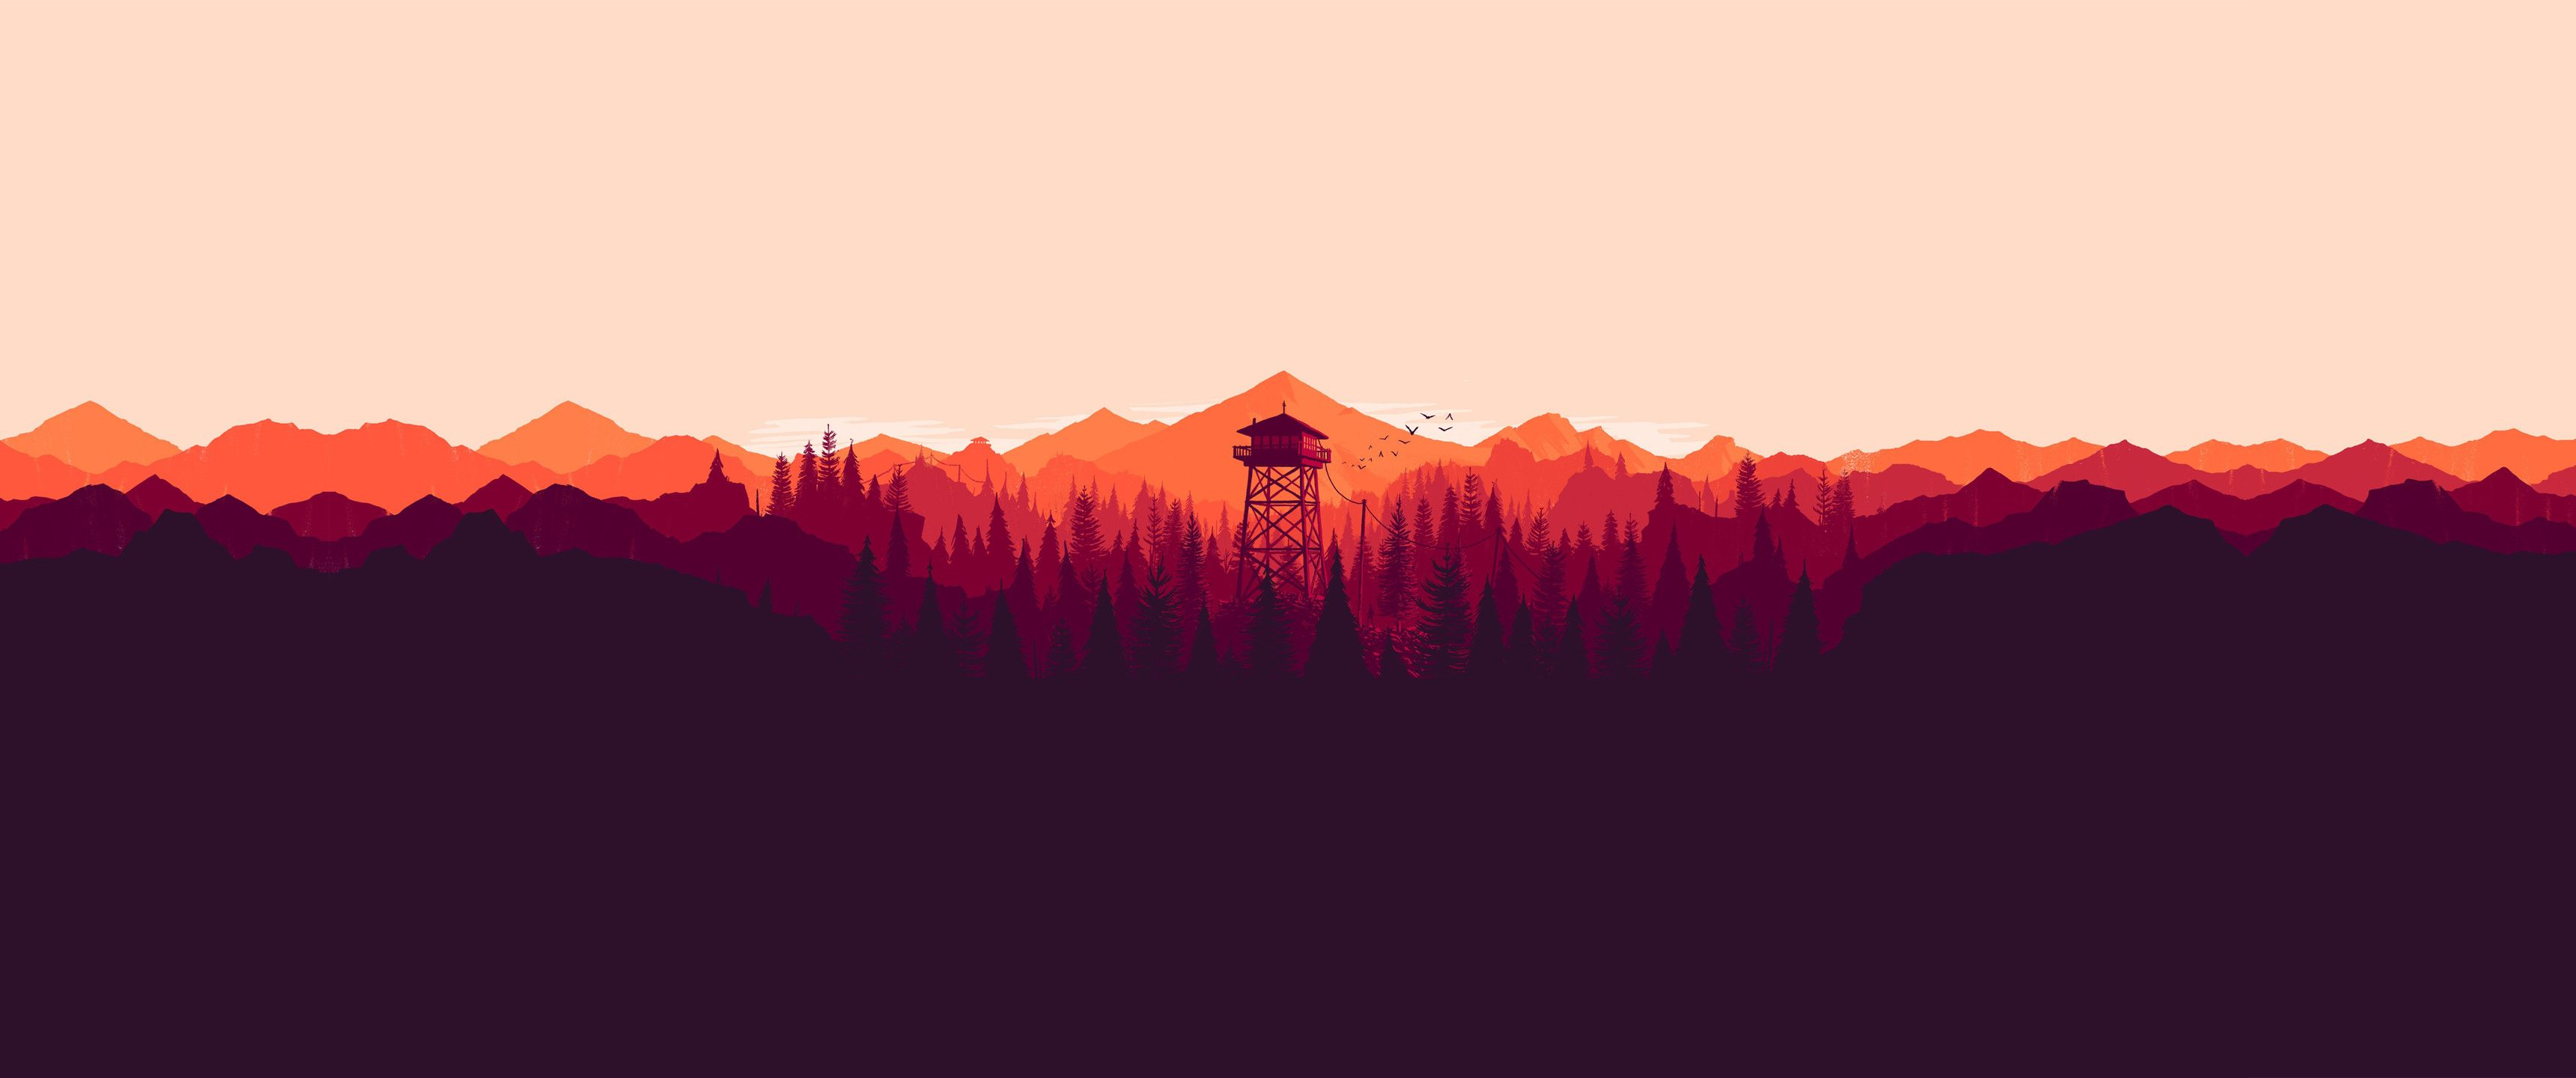 Res 3440x1440 Firewatch Ultrawide Wallpaper Wallpaper Images Hd Wallpaper Abstract Wallpaper